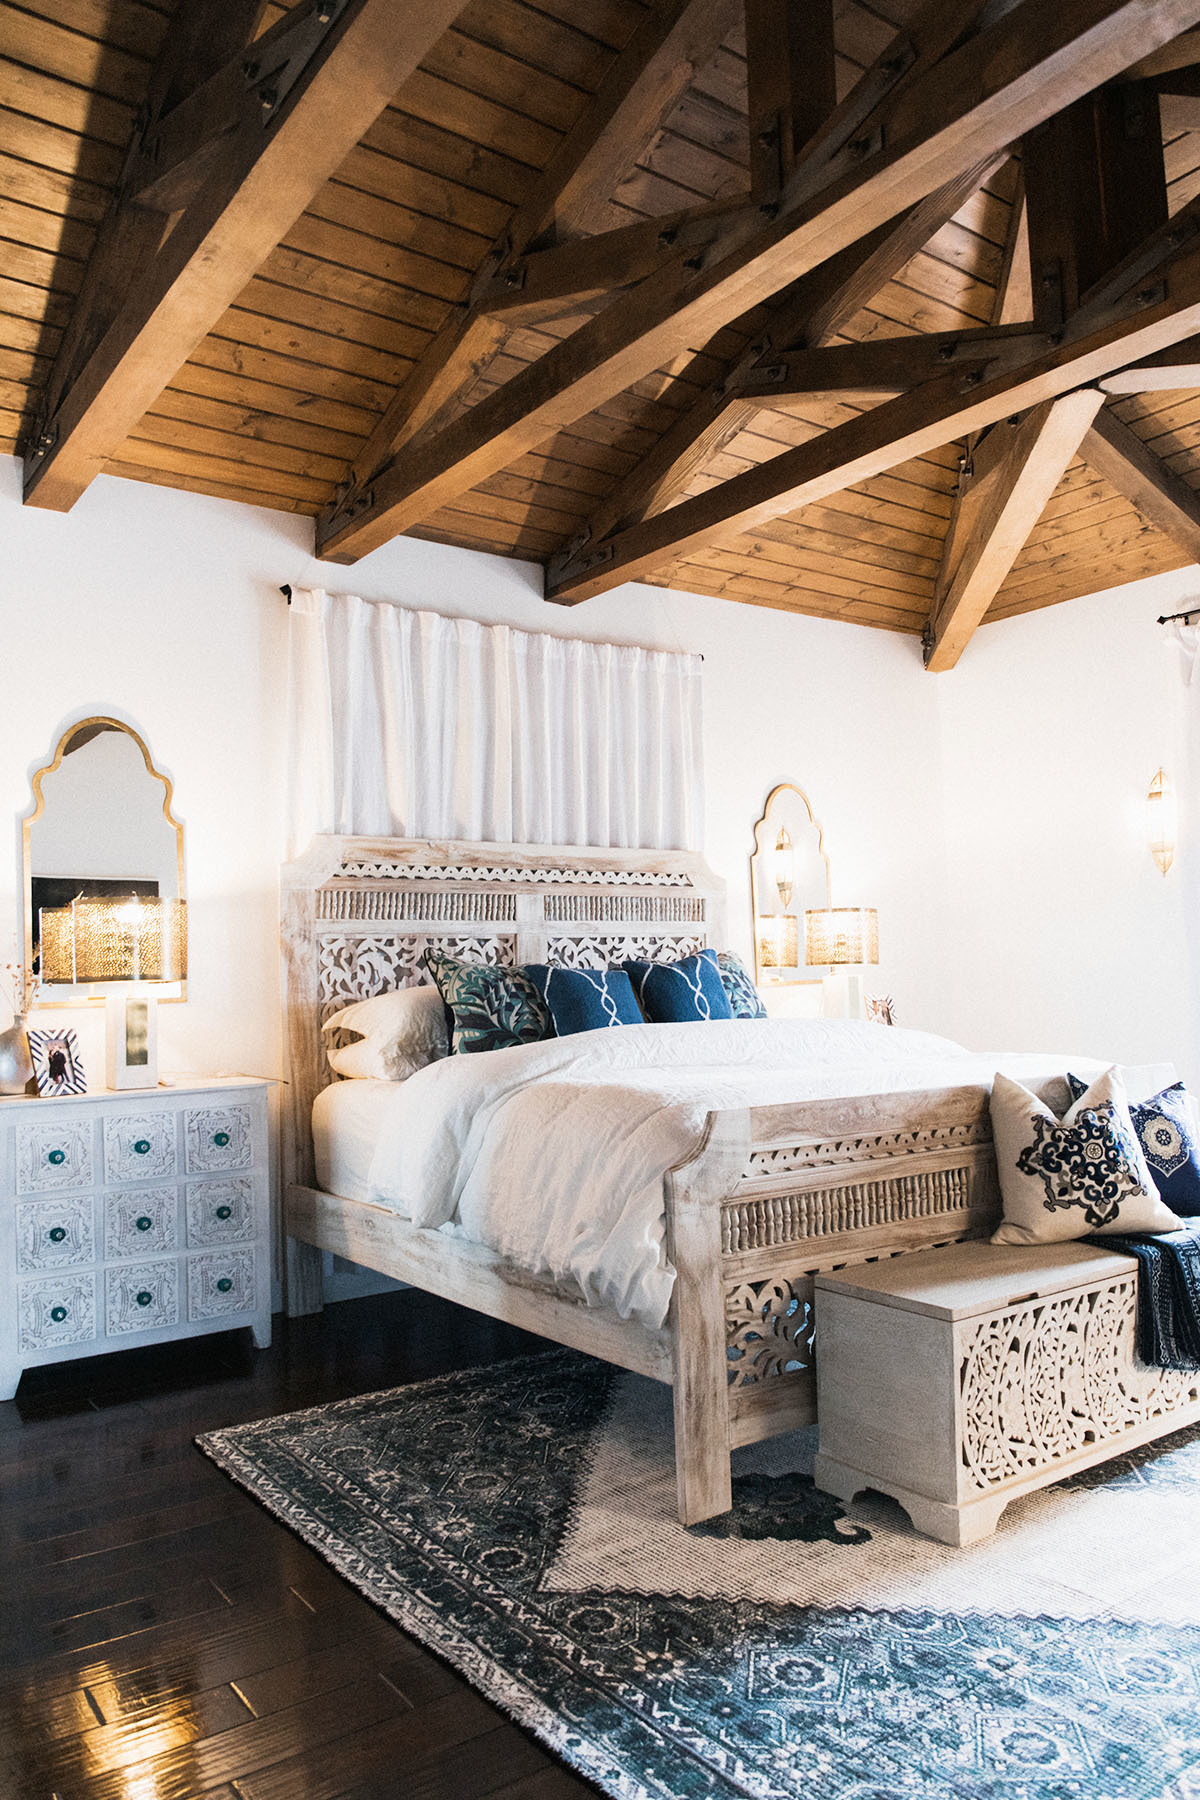 Shahid layers the master bedroom space with a jewel-toned rug and whitewashed wood. Benjamin Moore Paint | Feizy Rug | Living Spaces Bed | Restoration Hardware Bedding | Antique Bedside Tables | Custom Dresser | LampsPlus Mirrors | Custom Throw | Vintage Pillows | Custom Drapes.